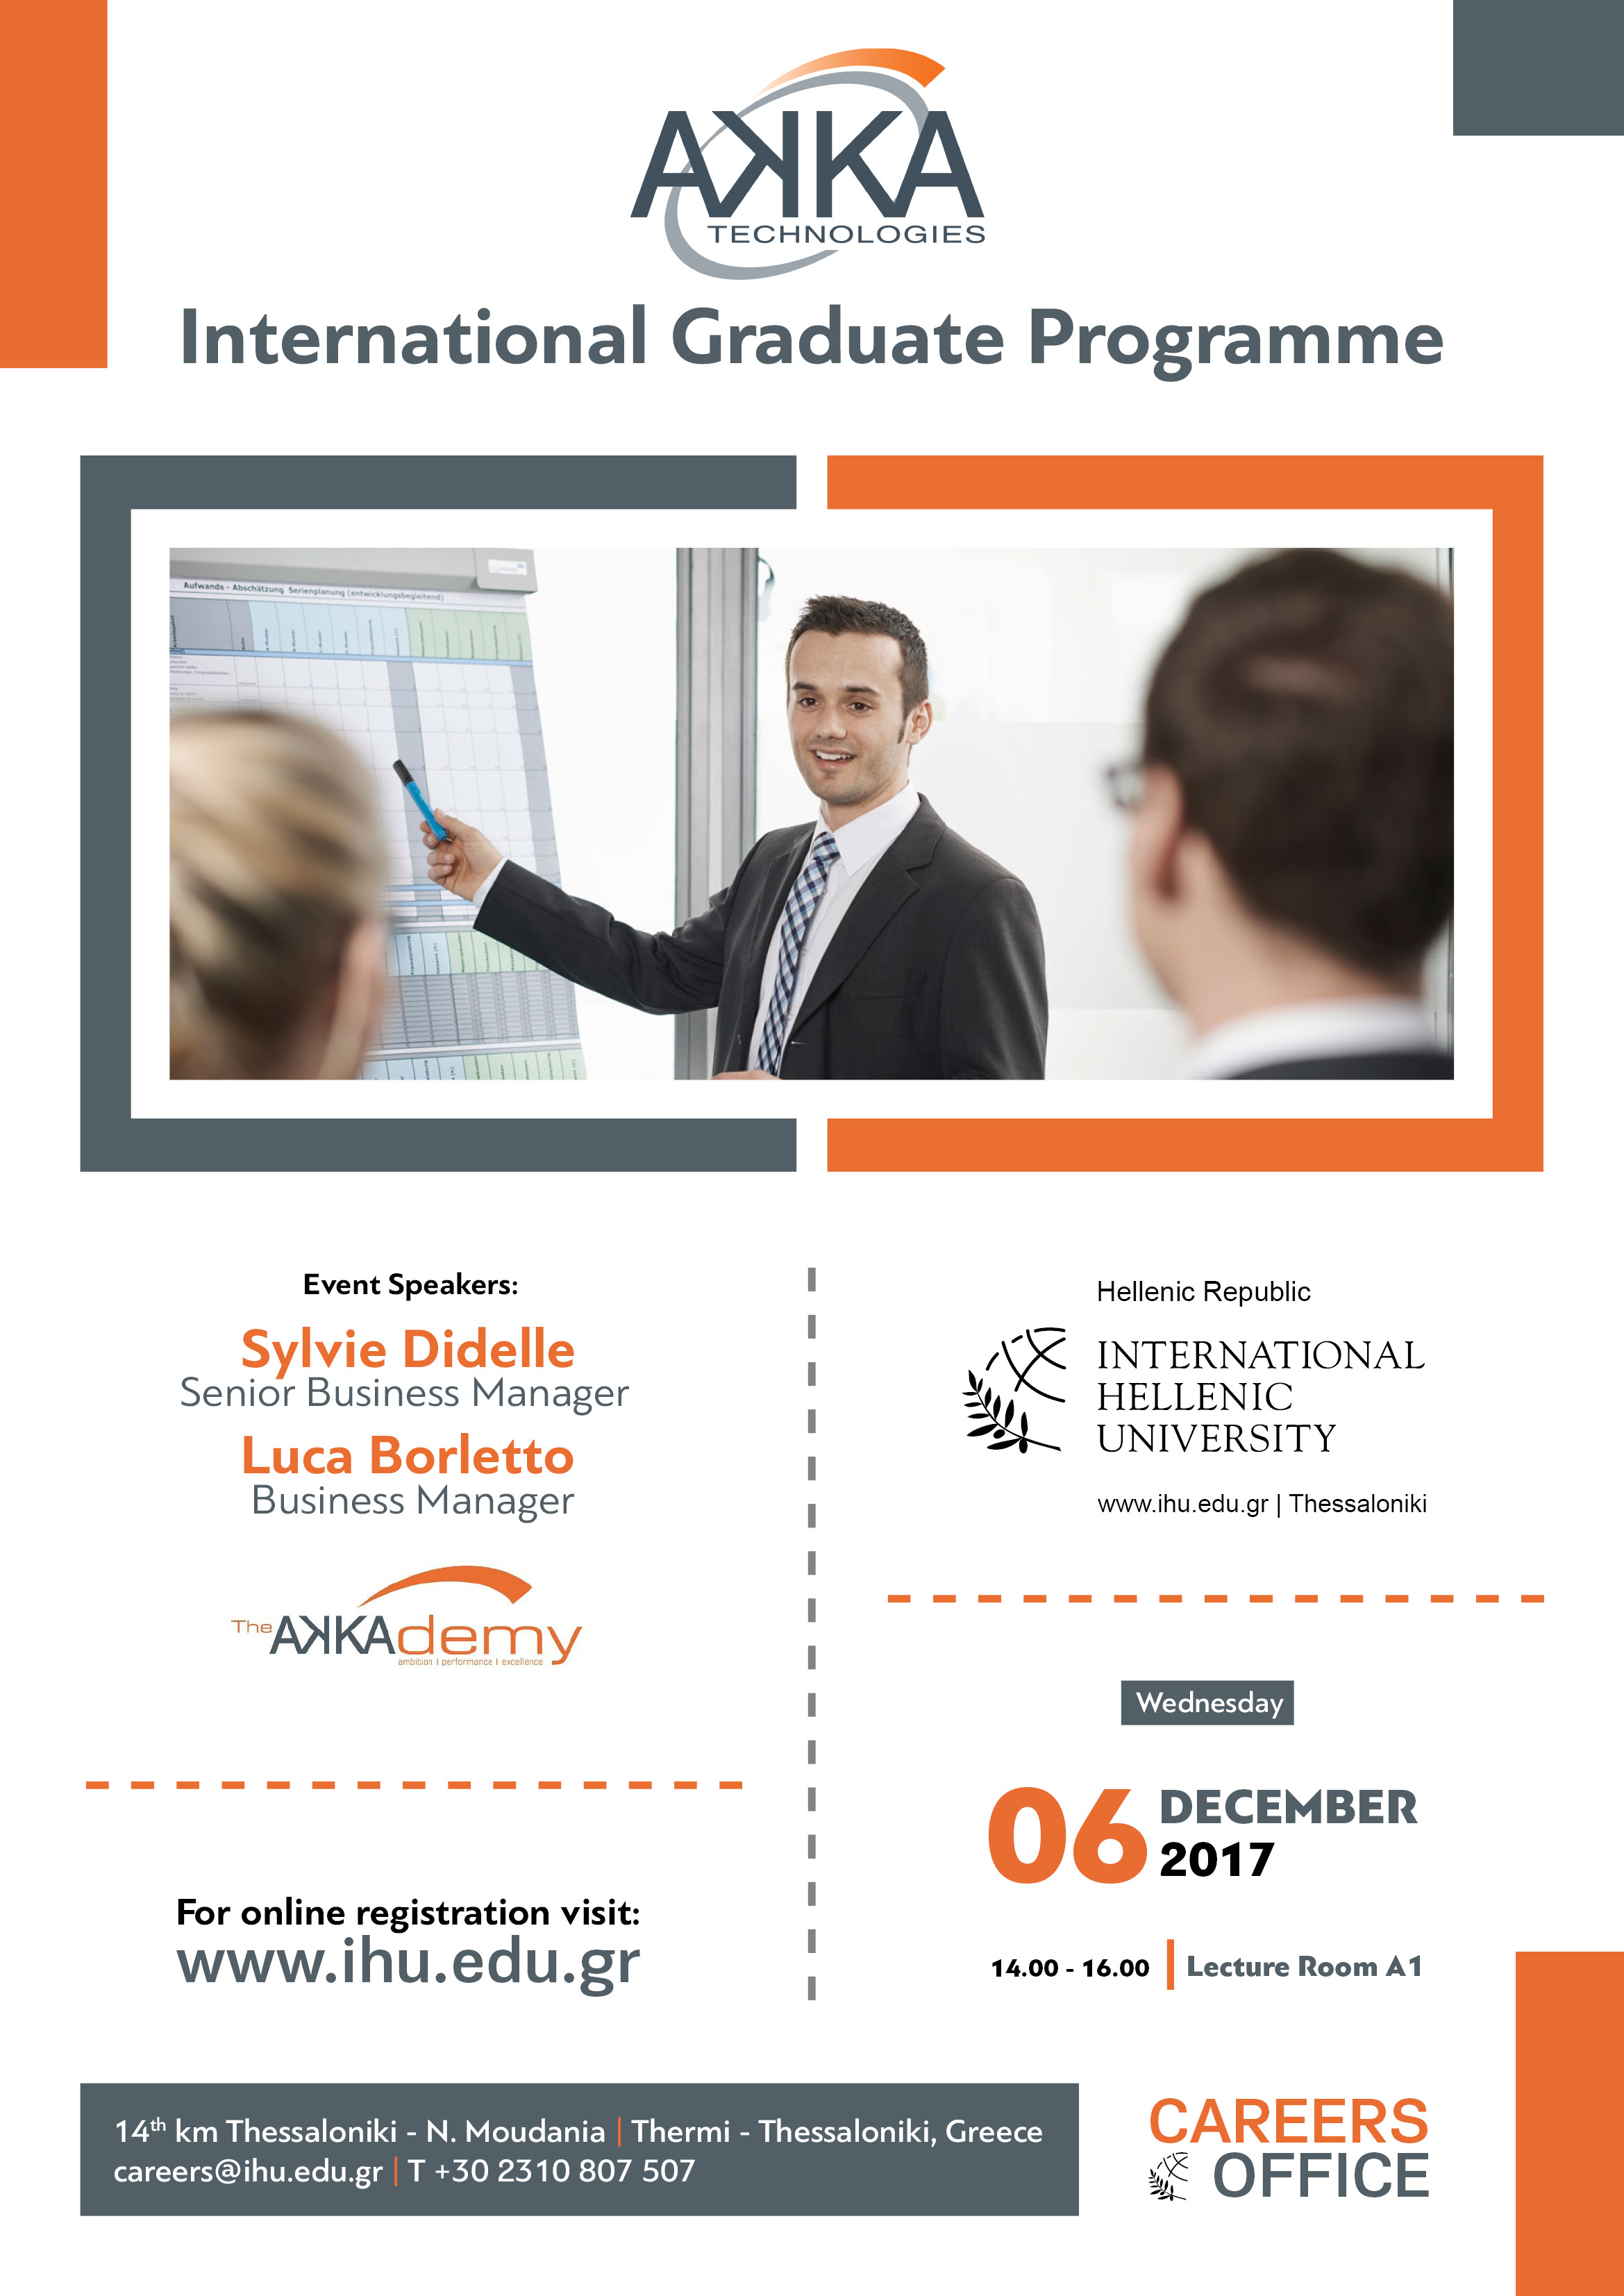 The International Graduate Programme is a month programme; consisting of a 6-week induction and rotational placements throughout the business. At the end of the programme you join a team on a full time basis.